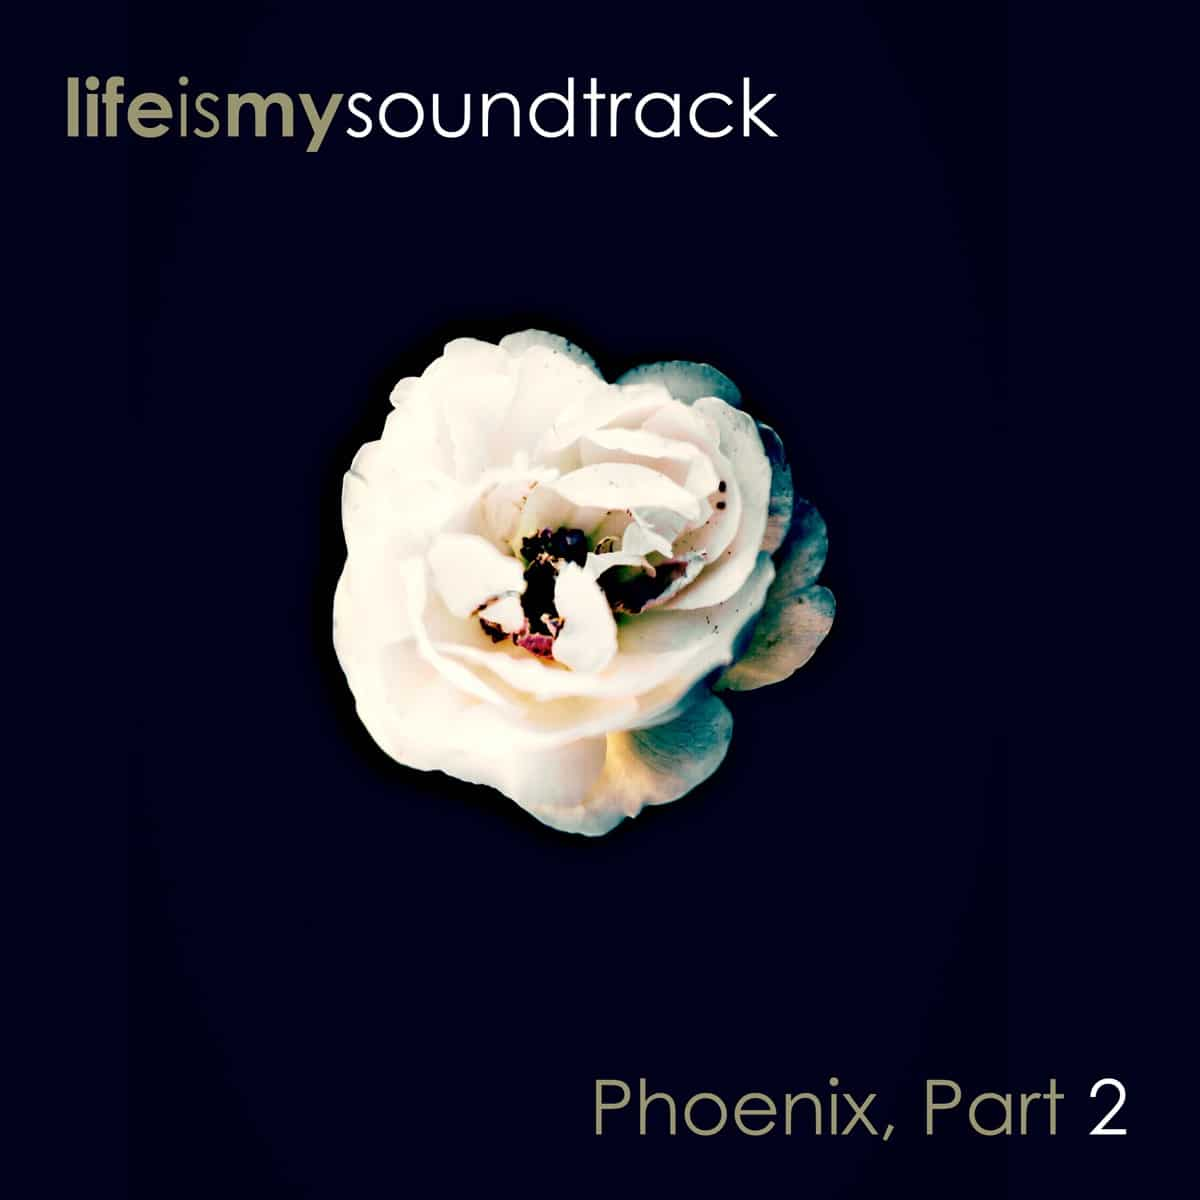 The album Phoenix, Part 2 by Life Is My Soundtrack - Part 5 of a collection of songs created over several years, but never finished until now